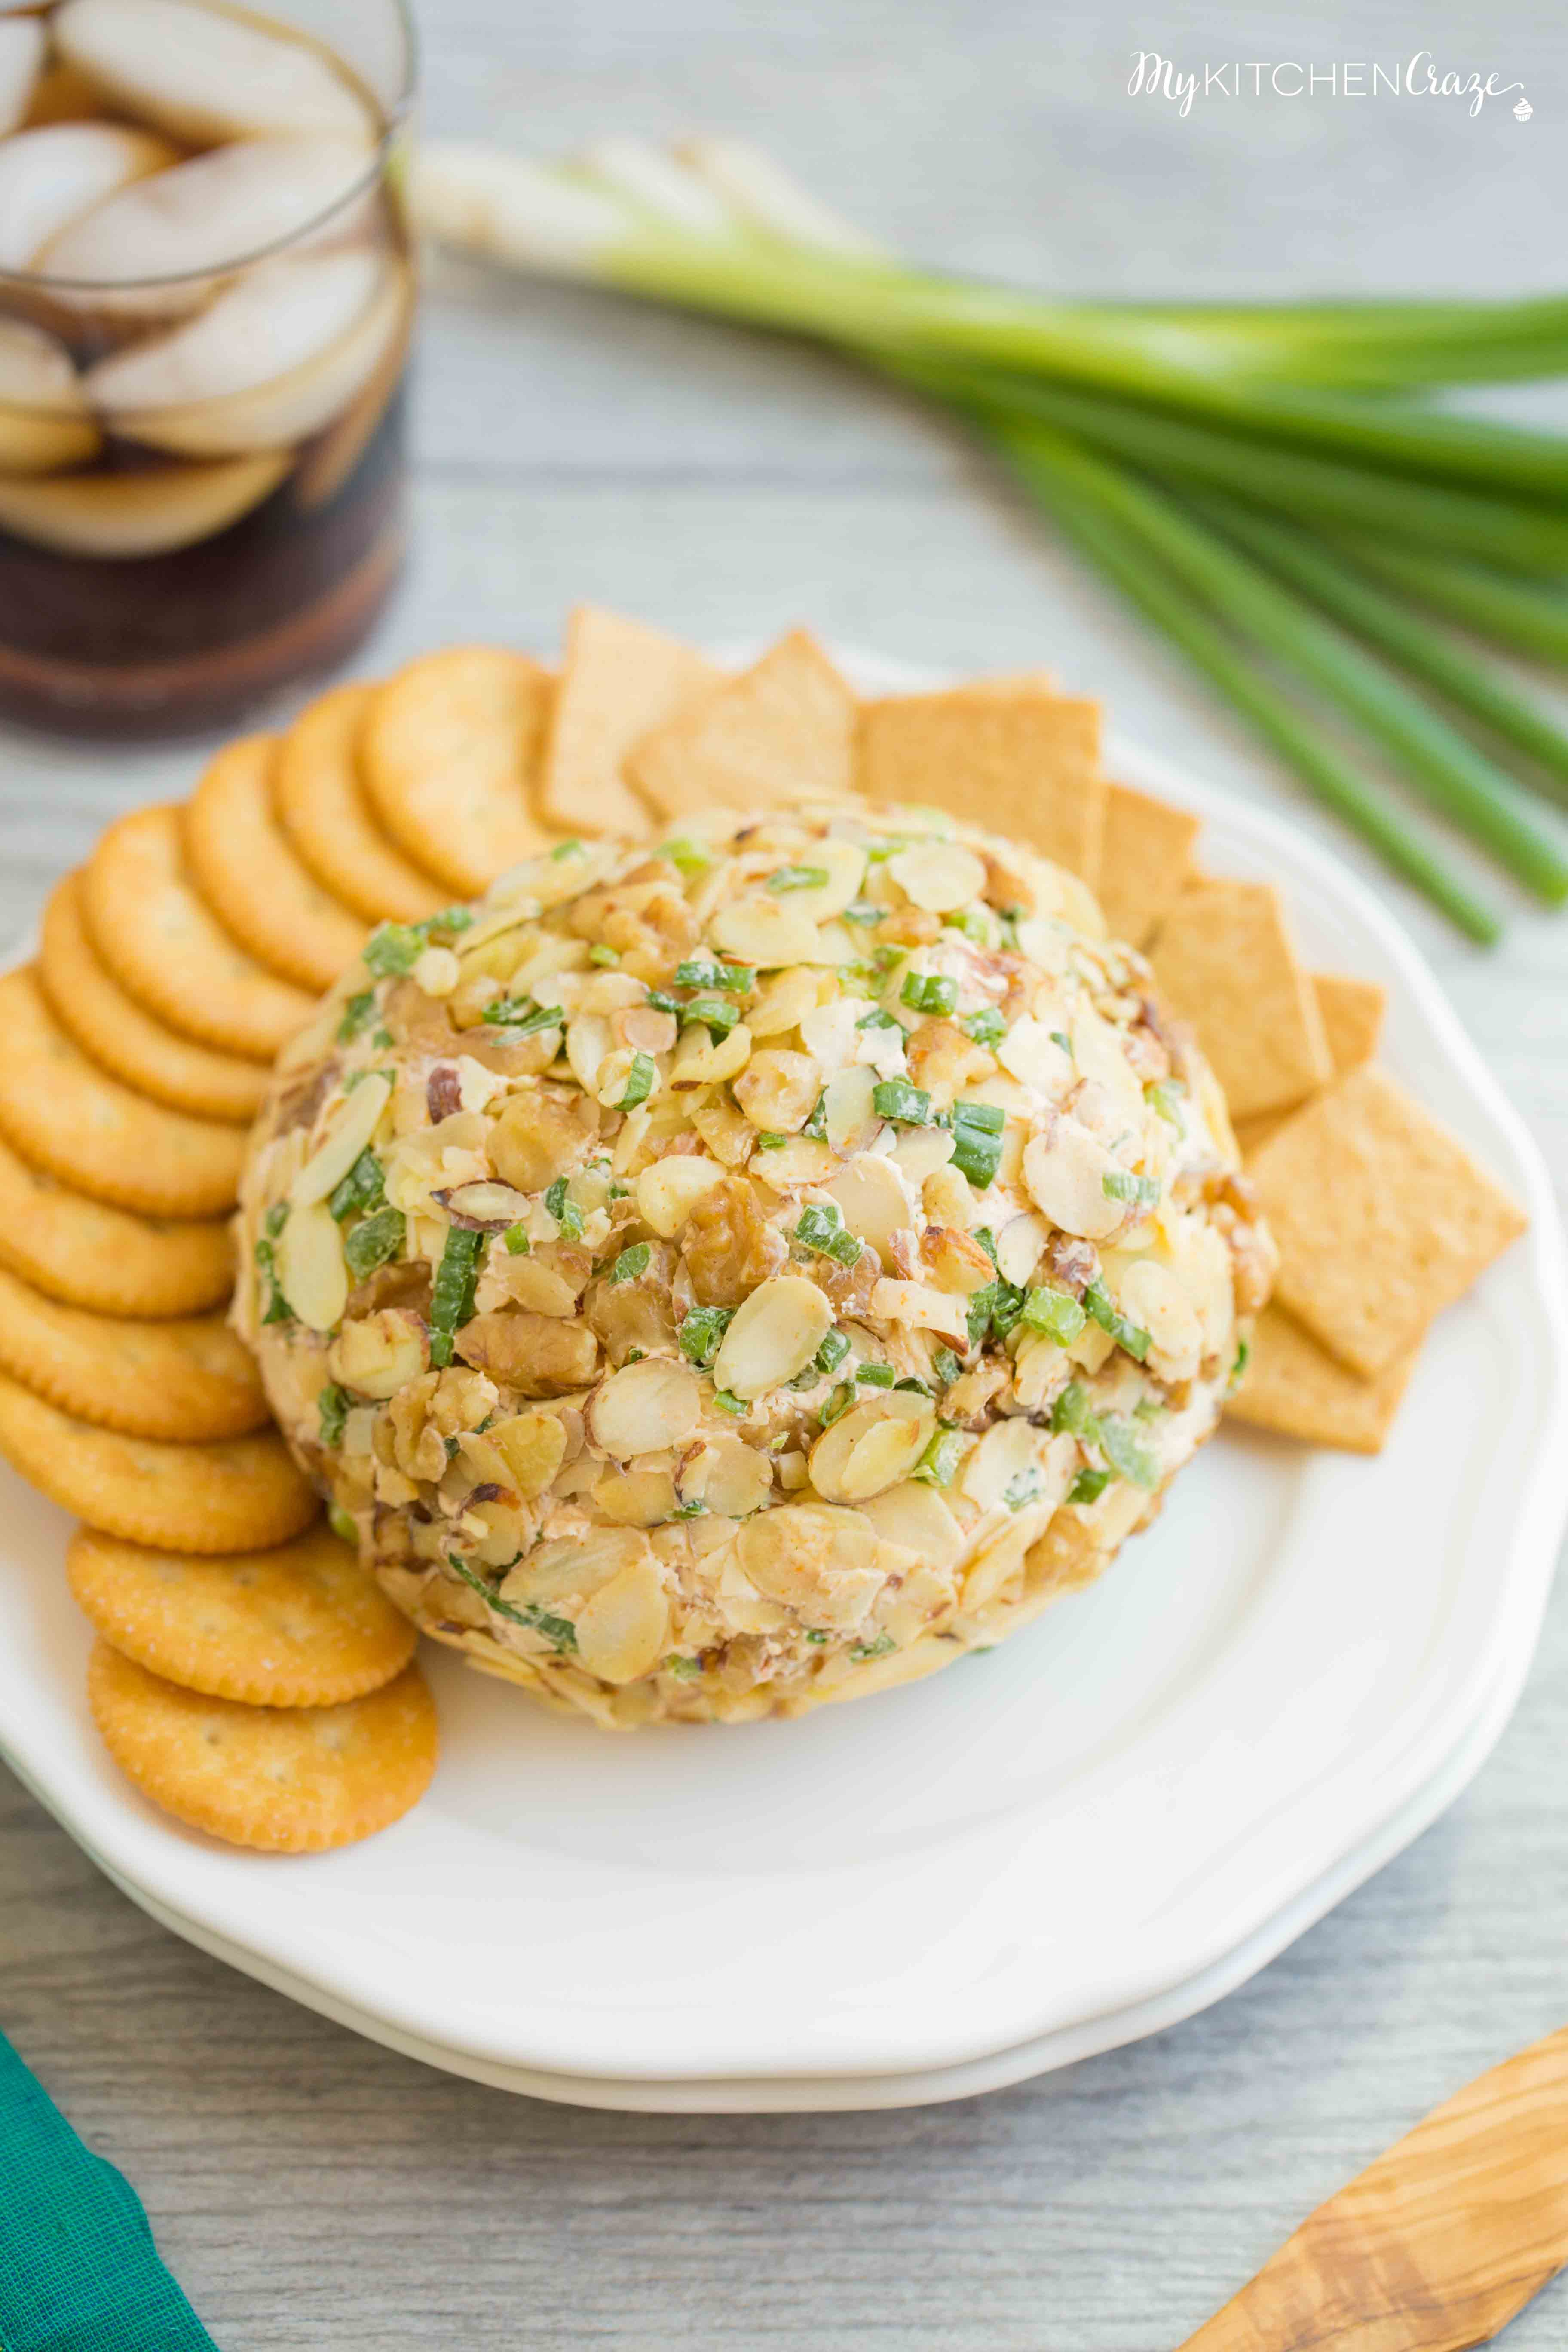 Spicy Cheese Ball ~ Loaded with cream cheese, spices, jalapeños, shredded cheeses & fresh veggies. This is one cheese ball bundled with rich creamy goodness!